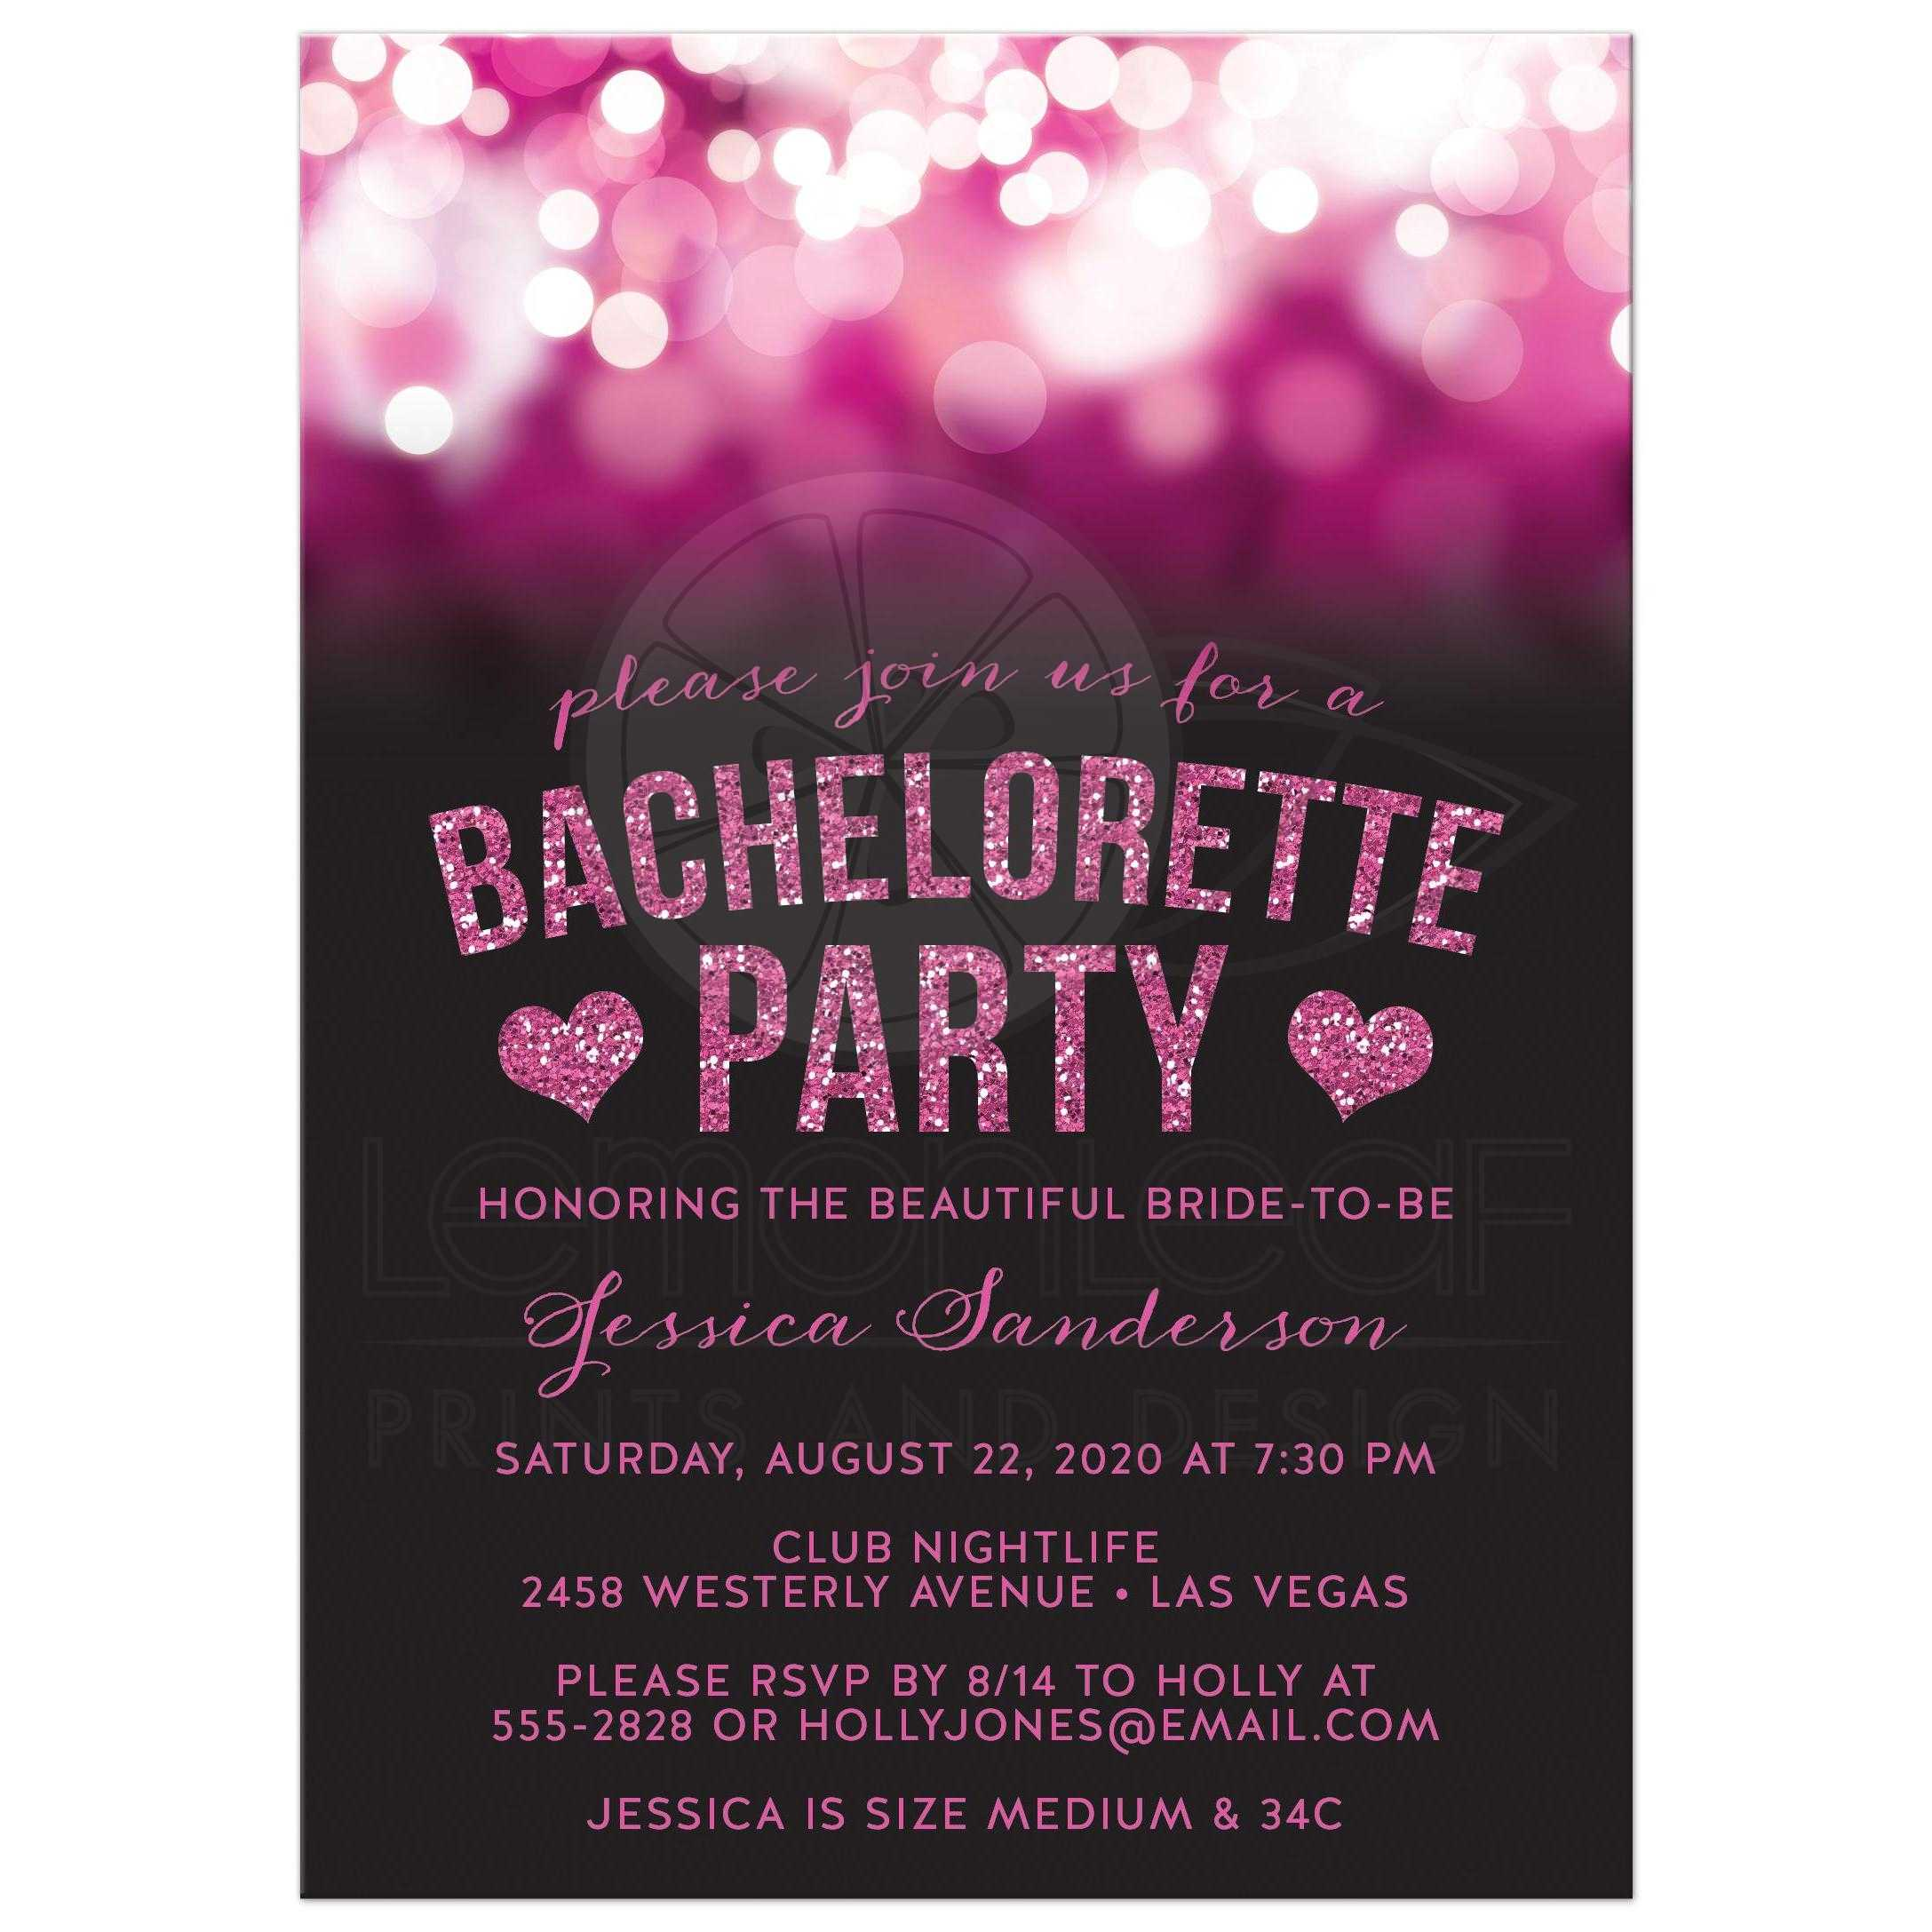 Bachelorette Party Invitations - Hot Pink Party Lights & Glitter